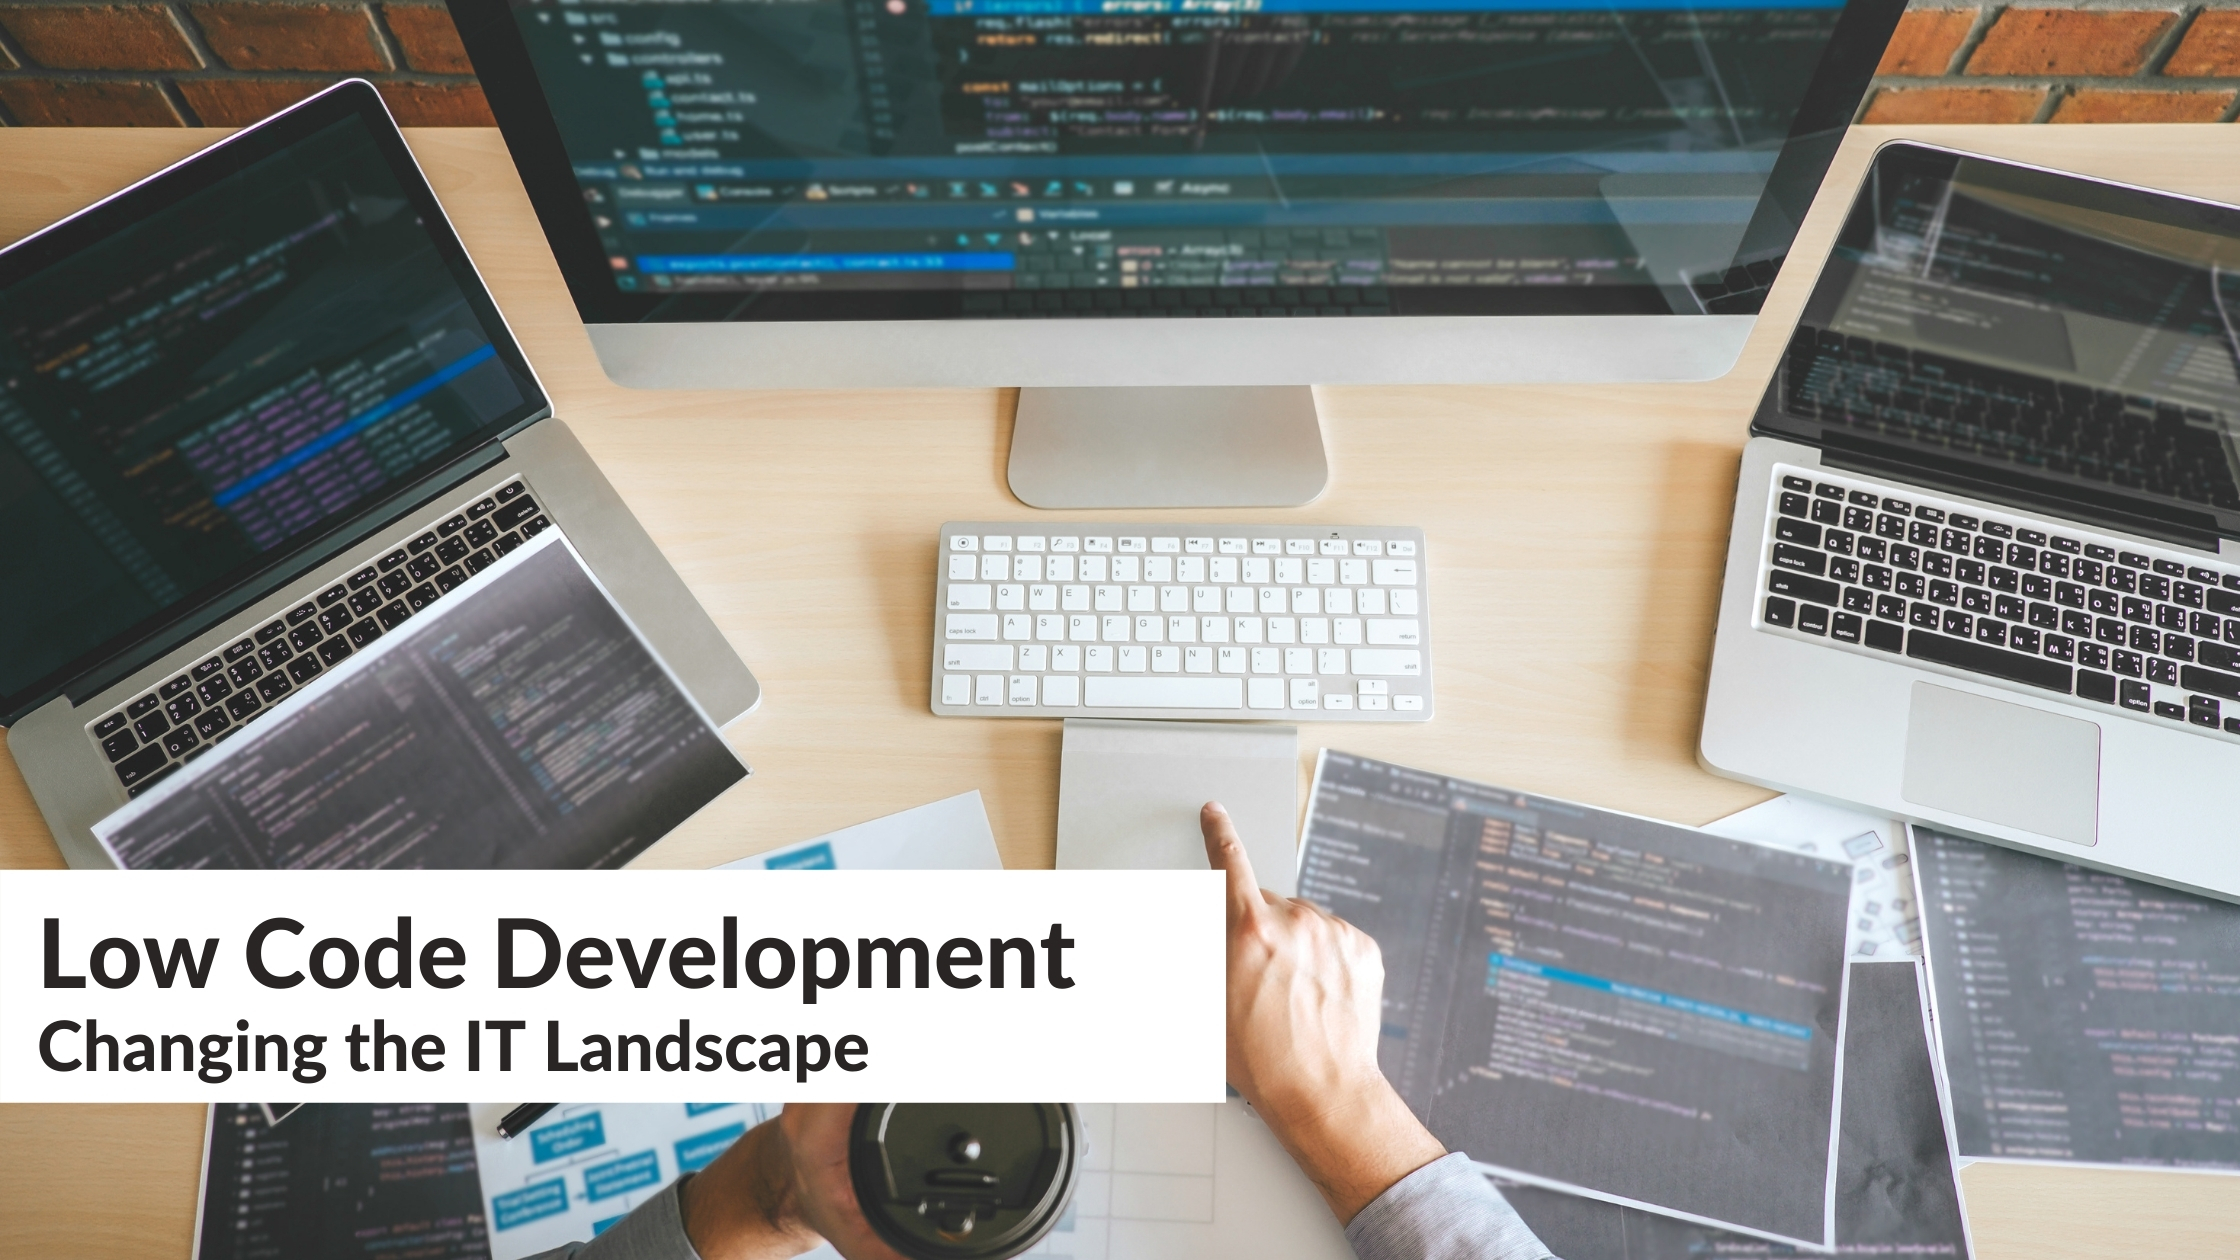 Low Code Development - Changing the IT Landscape